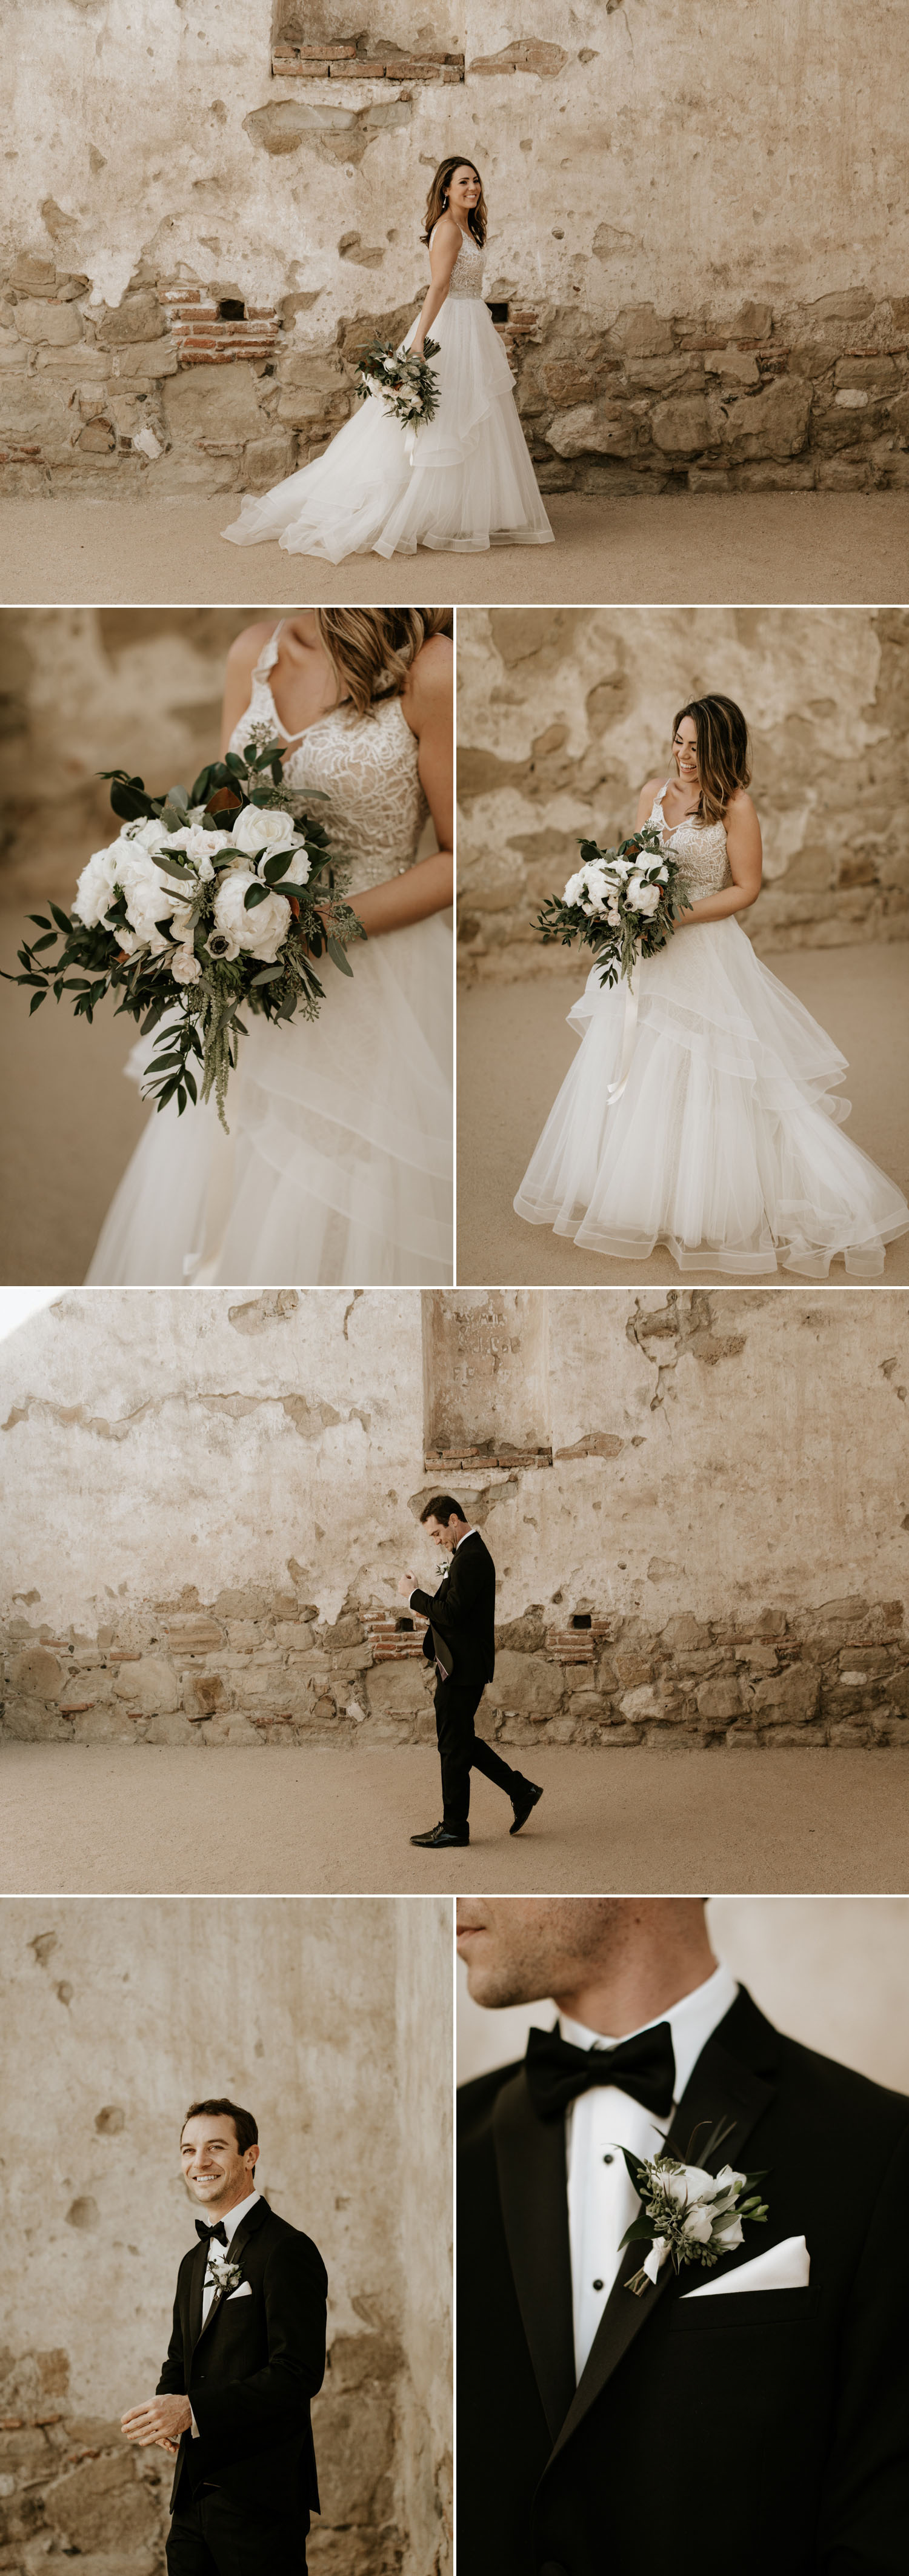 Wedding portraits at Mission San Juan Capistrano by orange county wedding photographer Paige Nelson